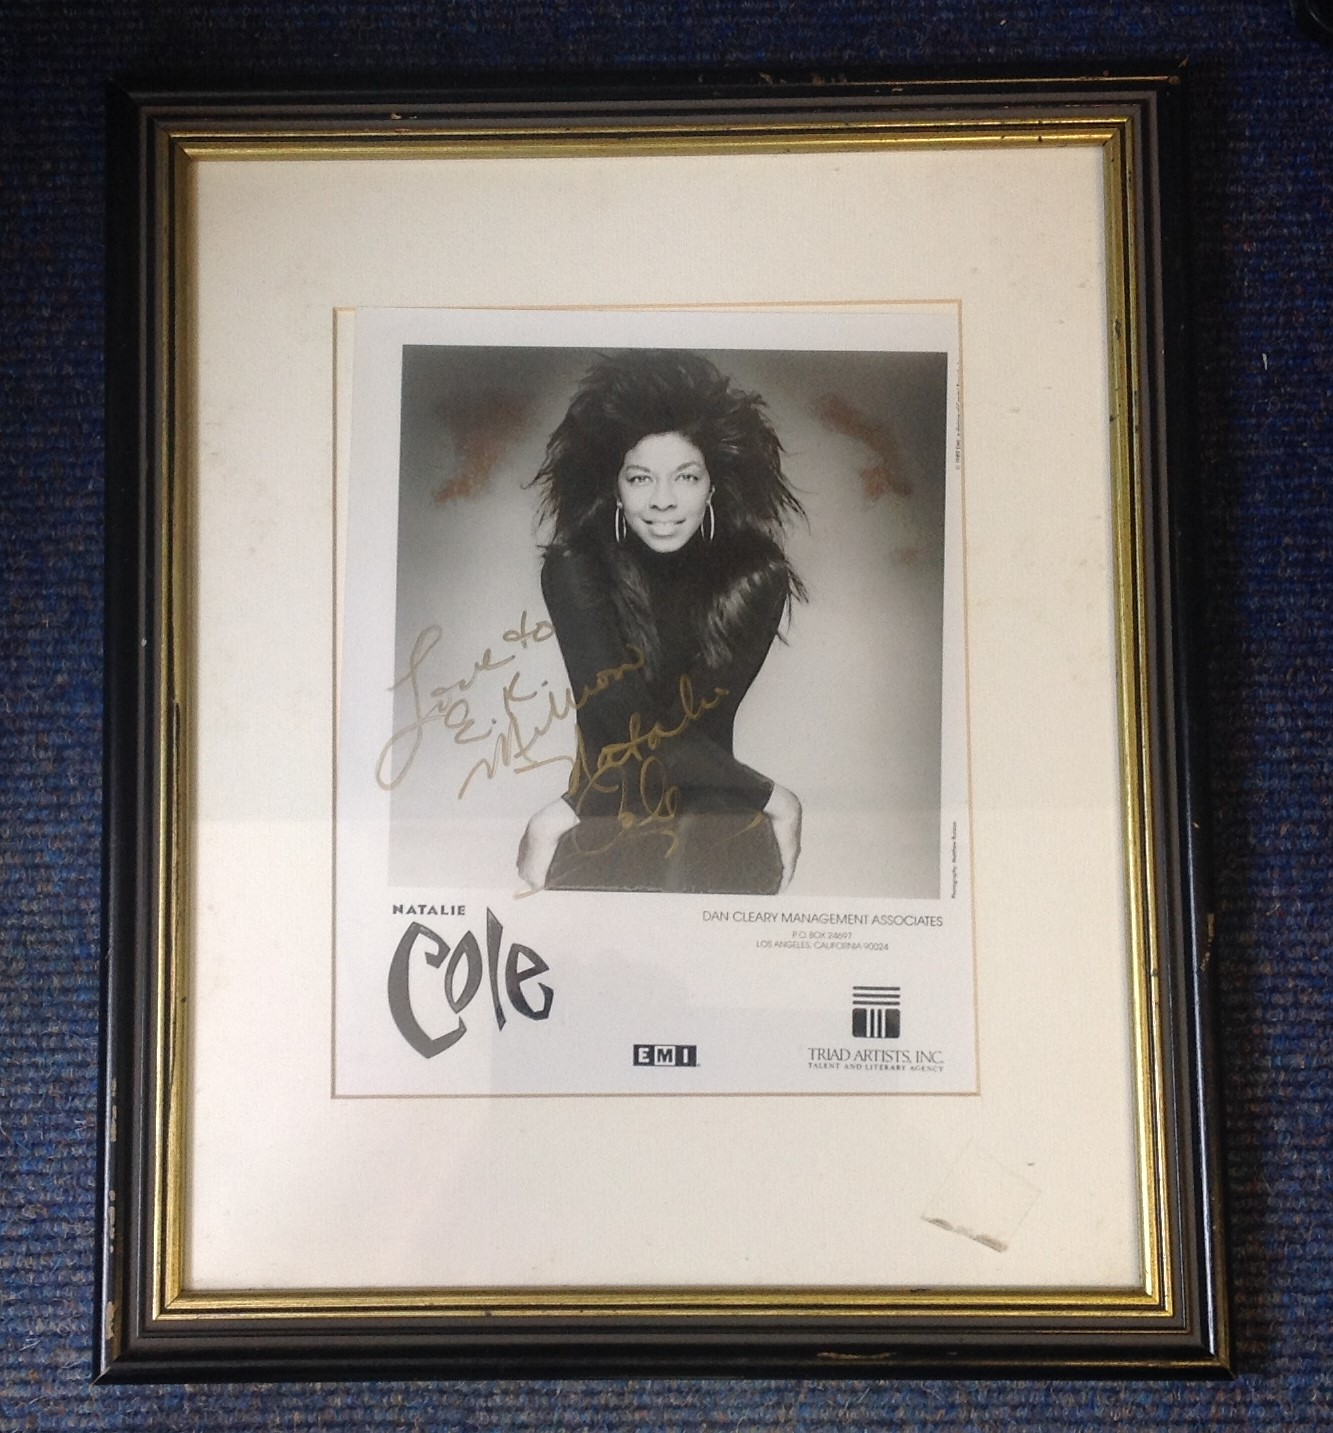 Lot 126 - Natalie Cole signed b/w photo. Mounted and framed to approx 16x12. dedicated. Good Condition. All